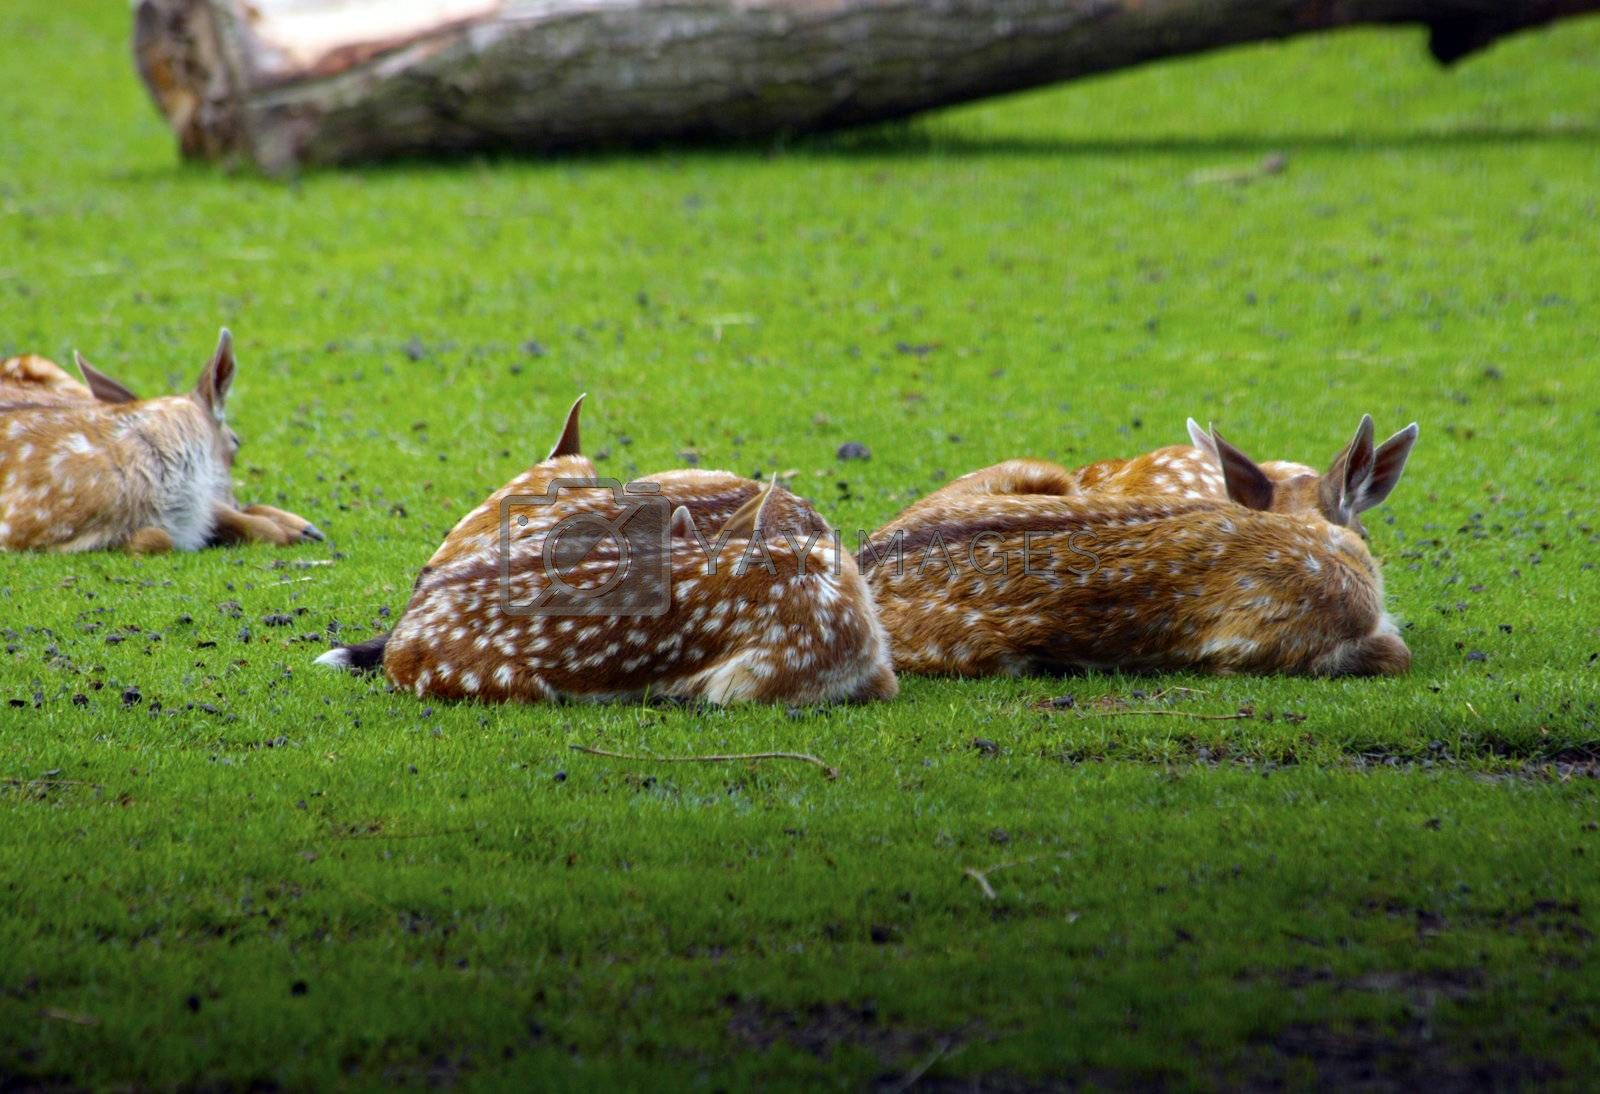 Royalty free image of Deers lying in grass by gigra